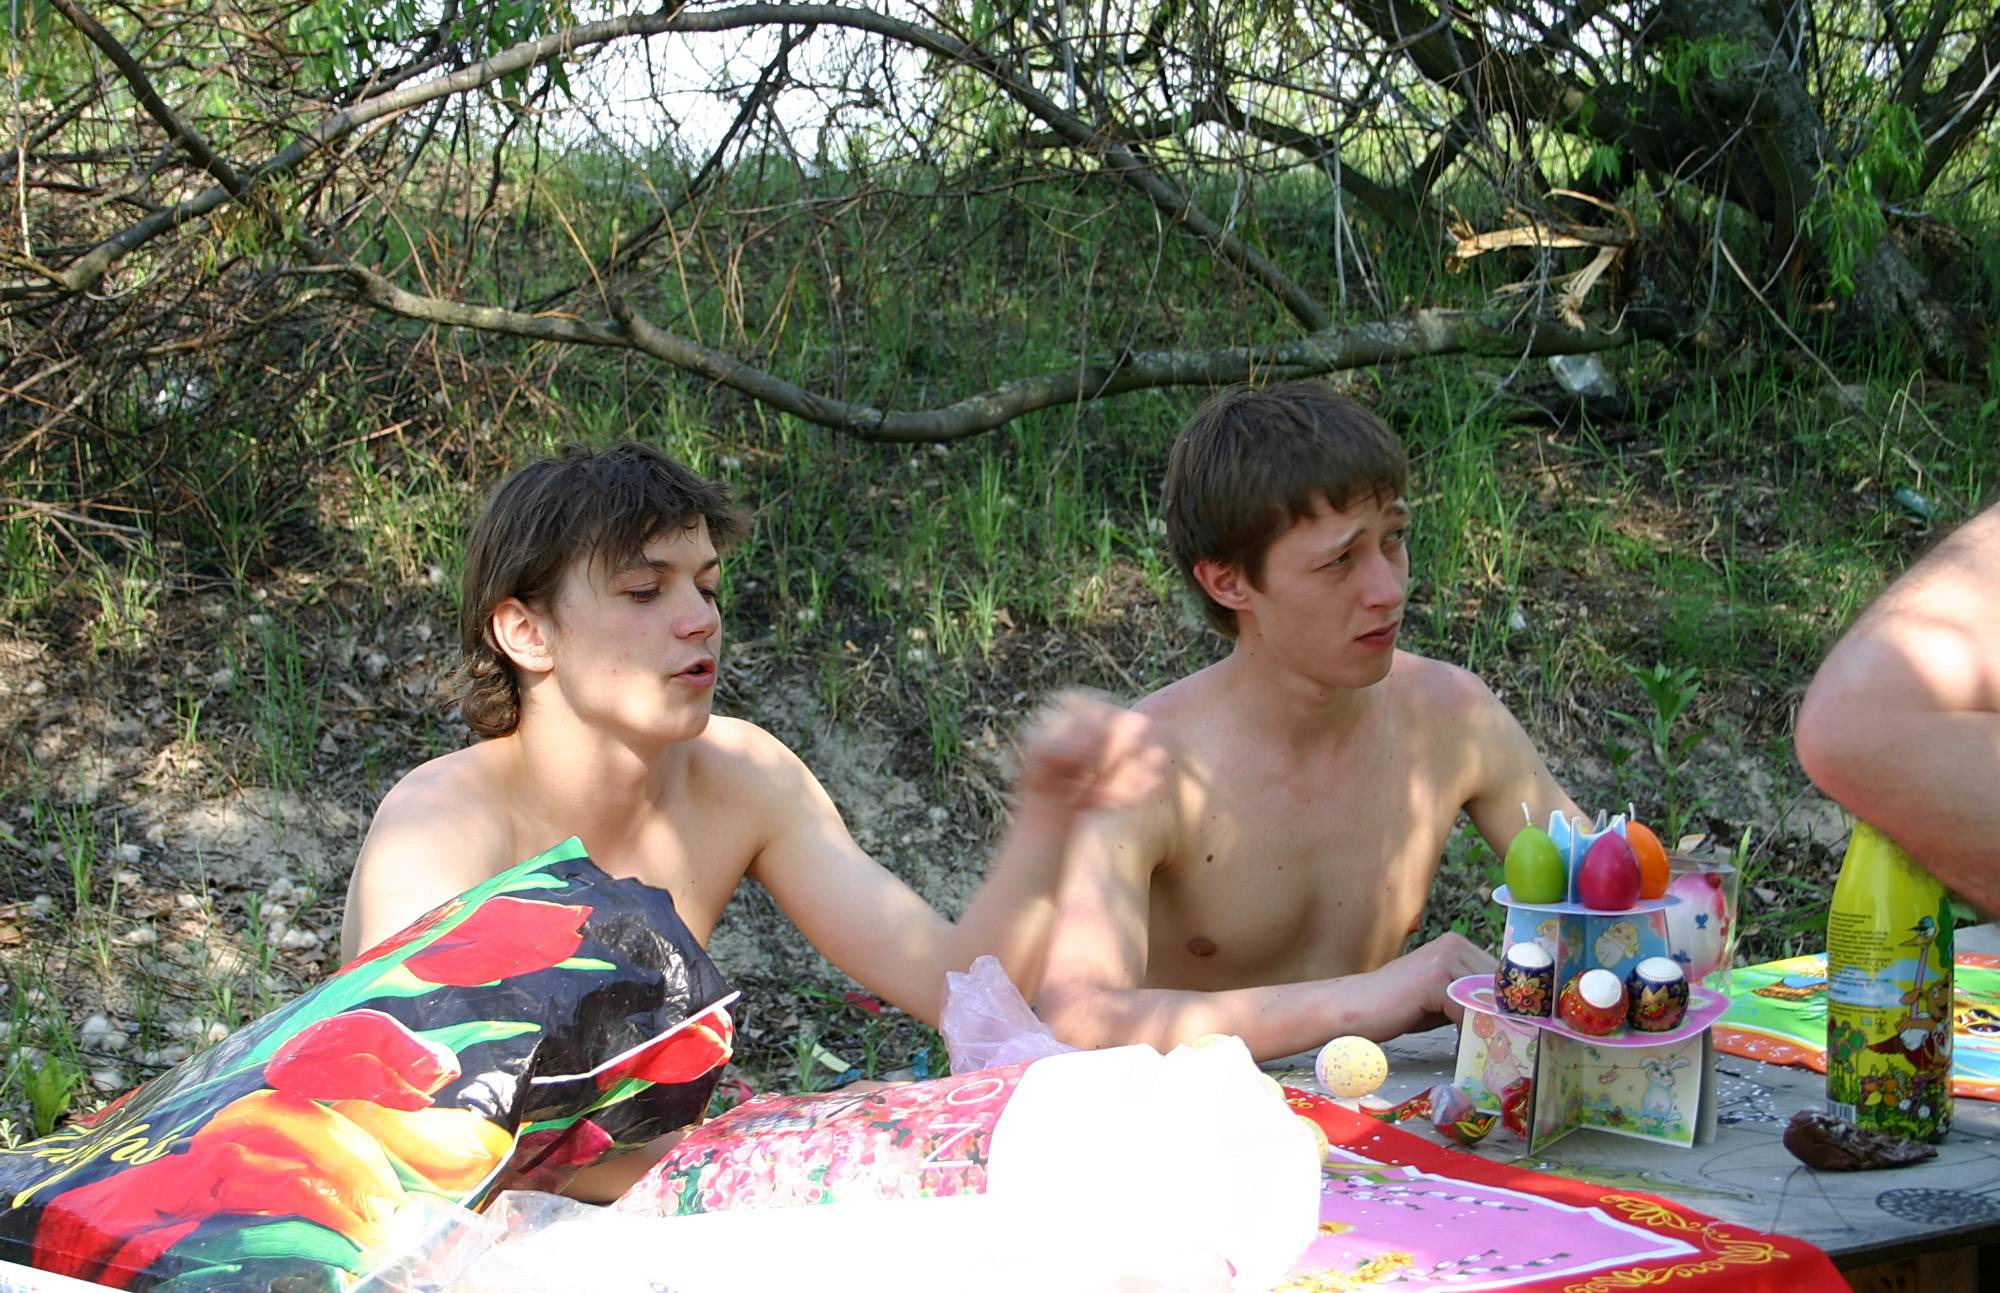 Nudist Gallery Our Sandy Green Picnic - 2